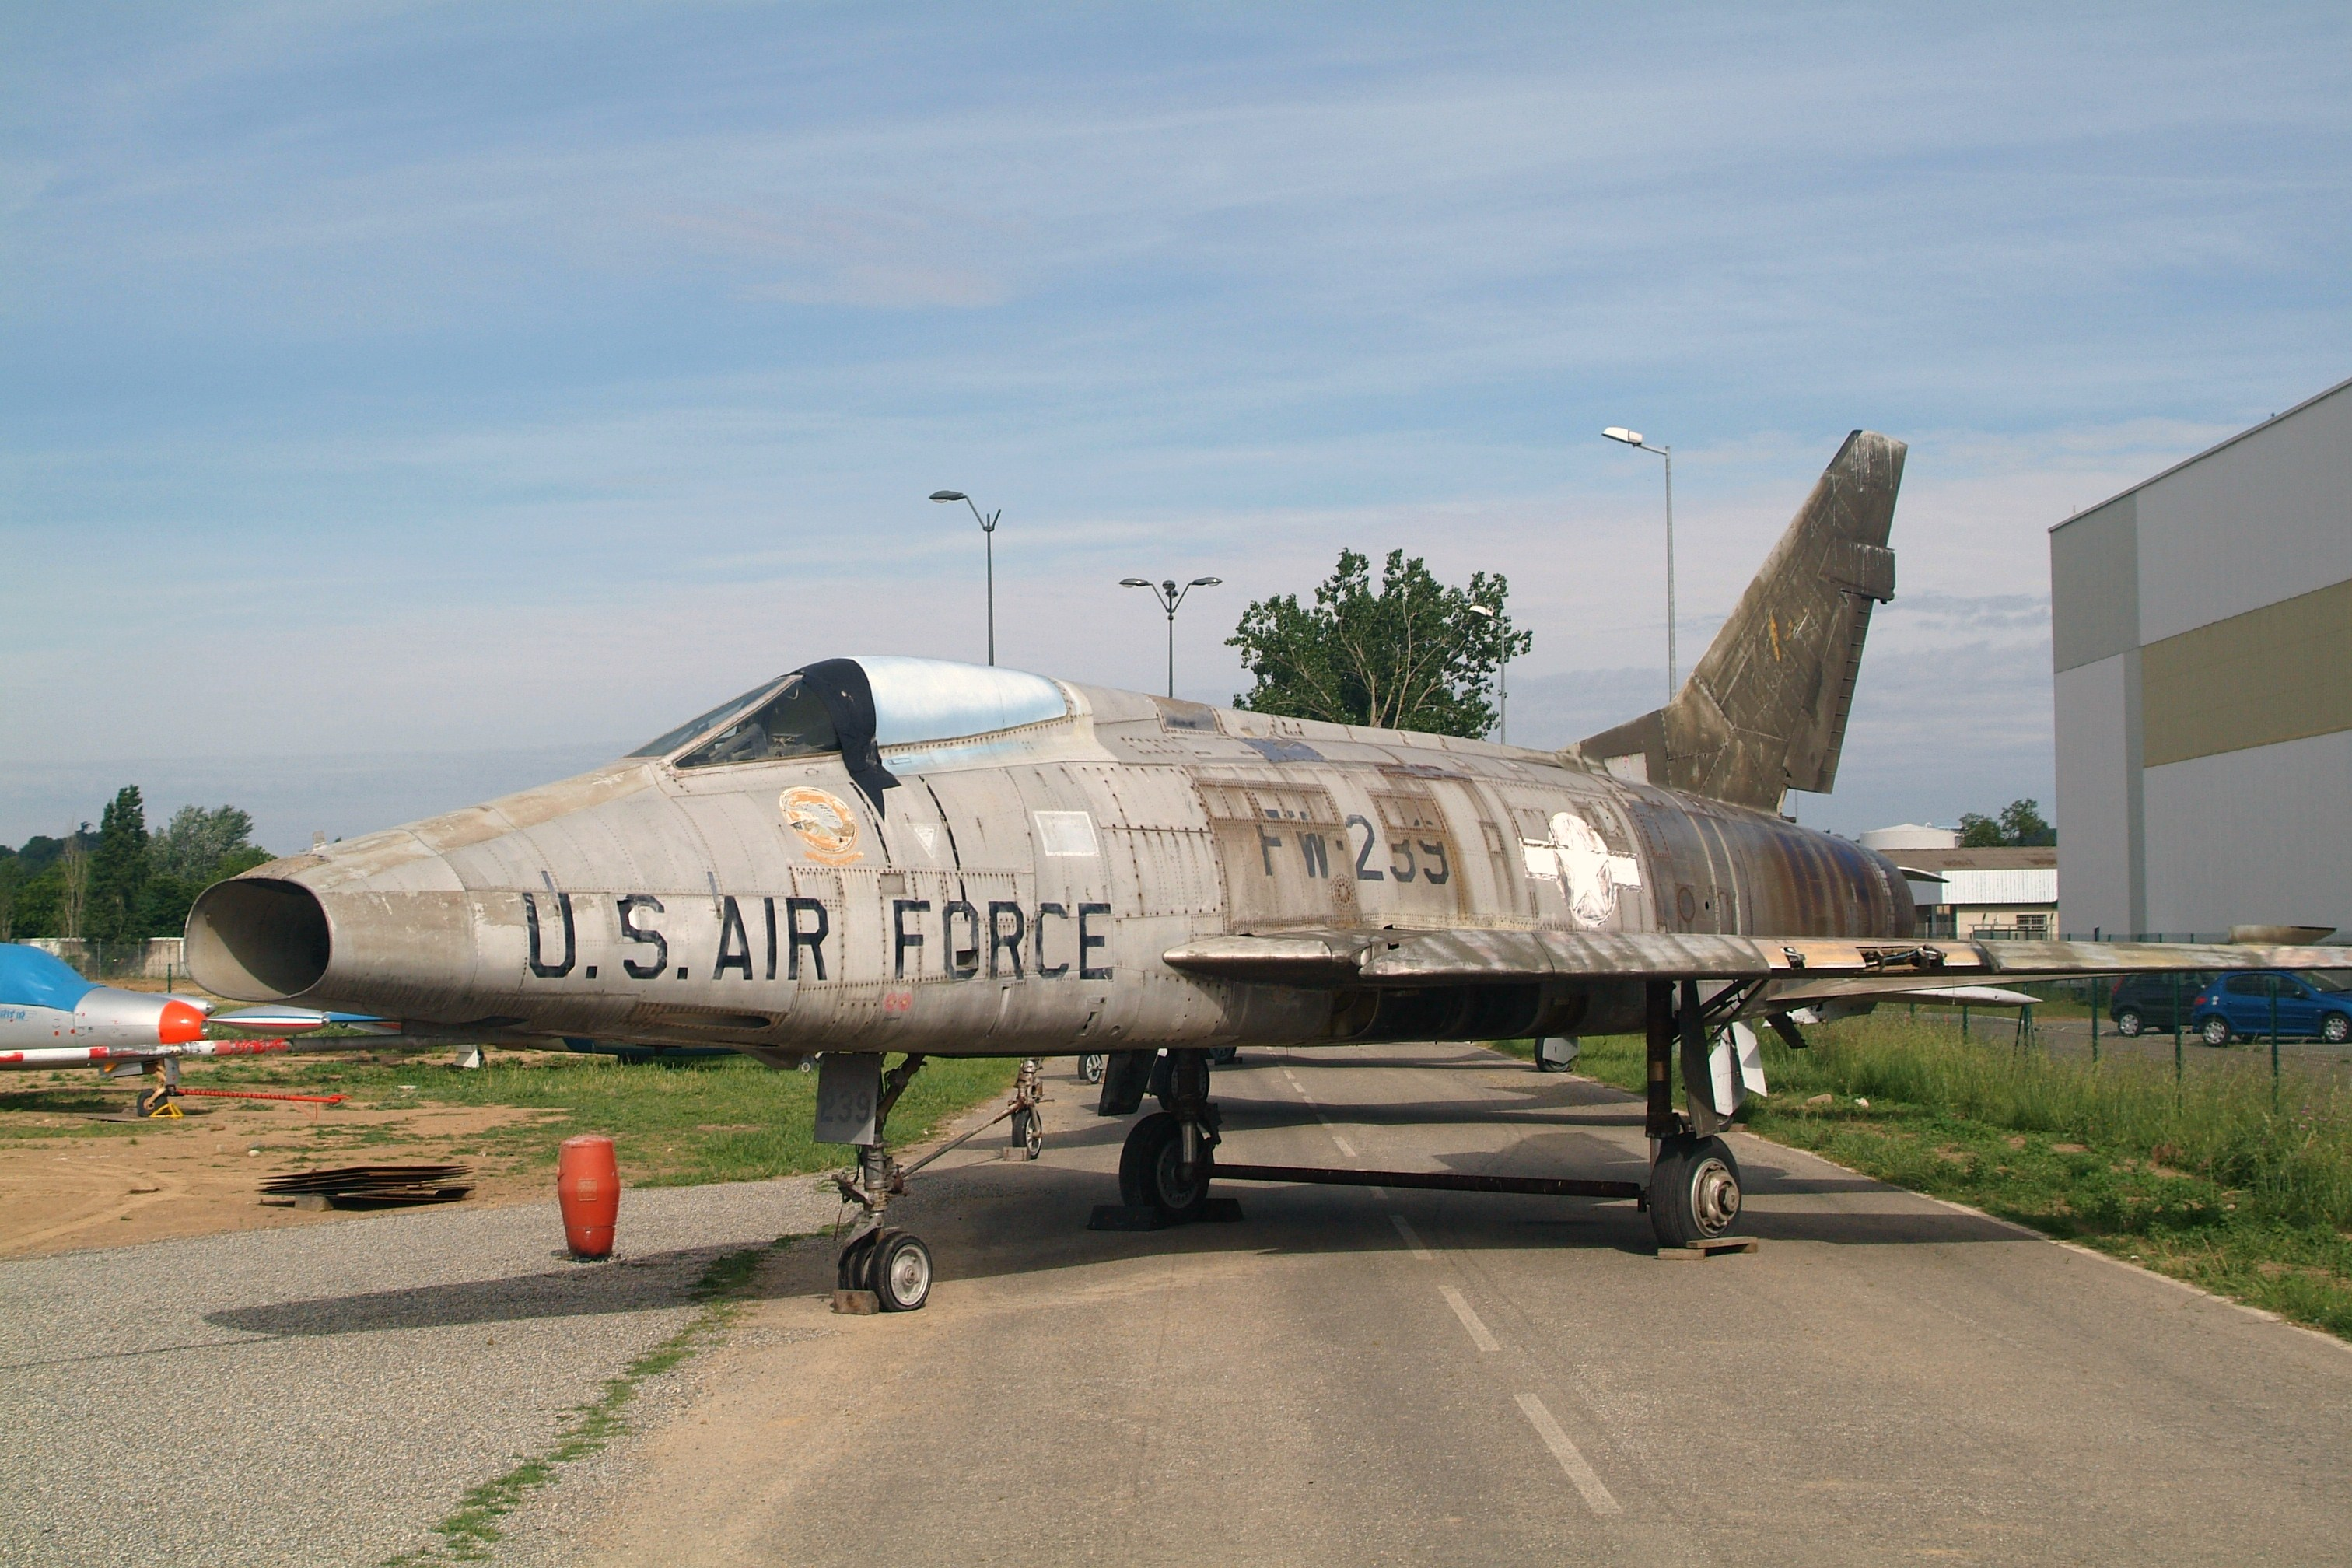 File:54-2239 FW-239 North American F-100D Super Sabre (